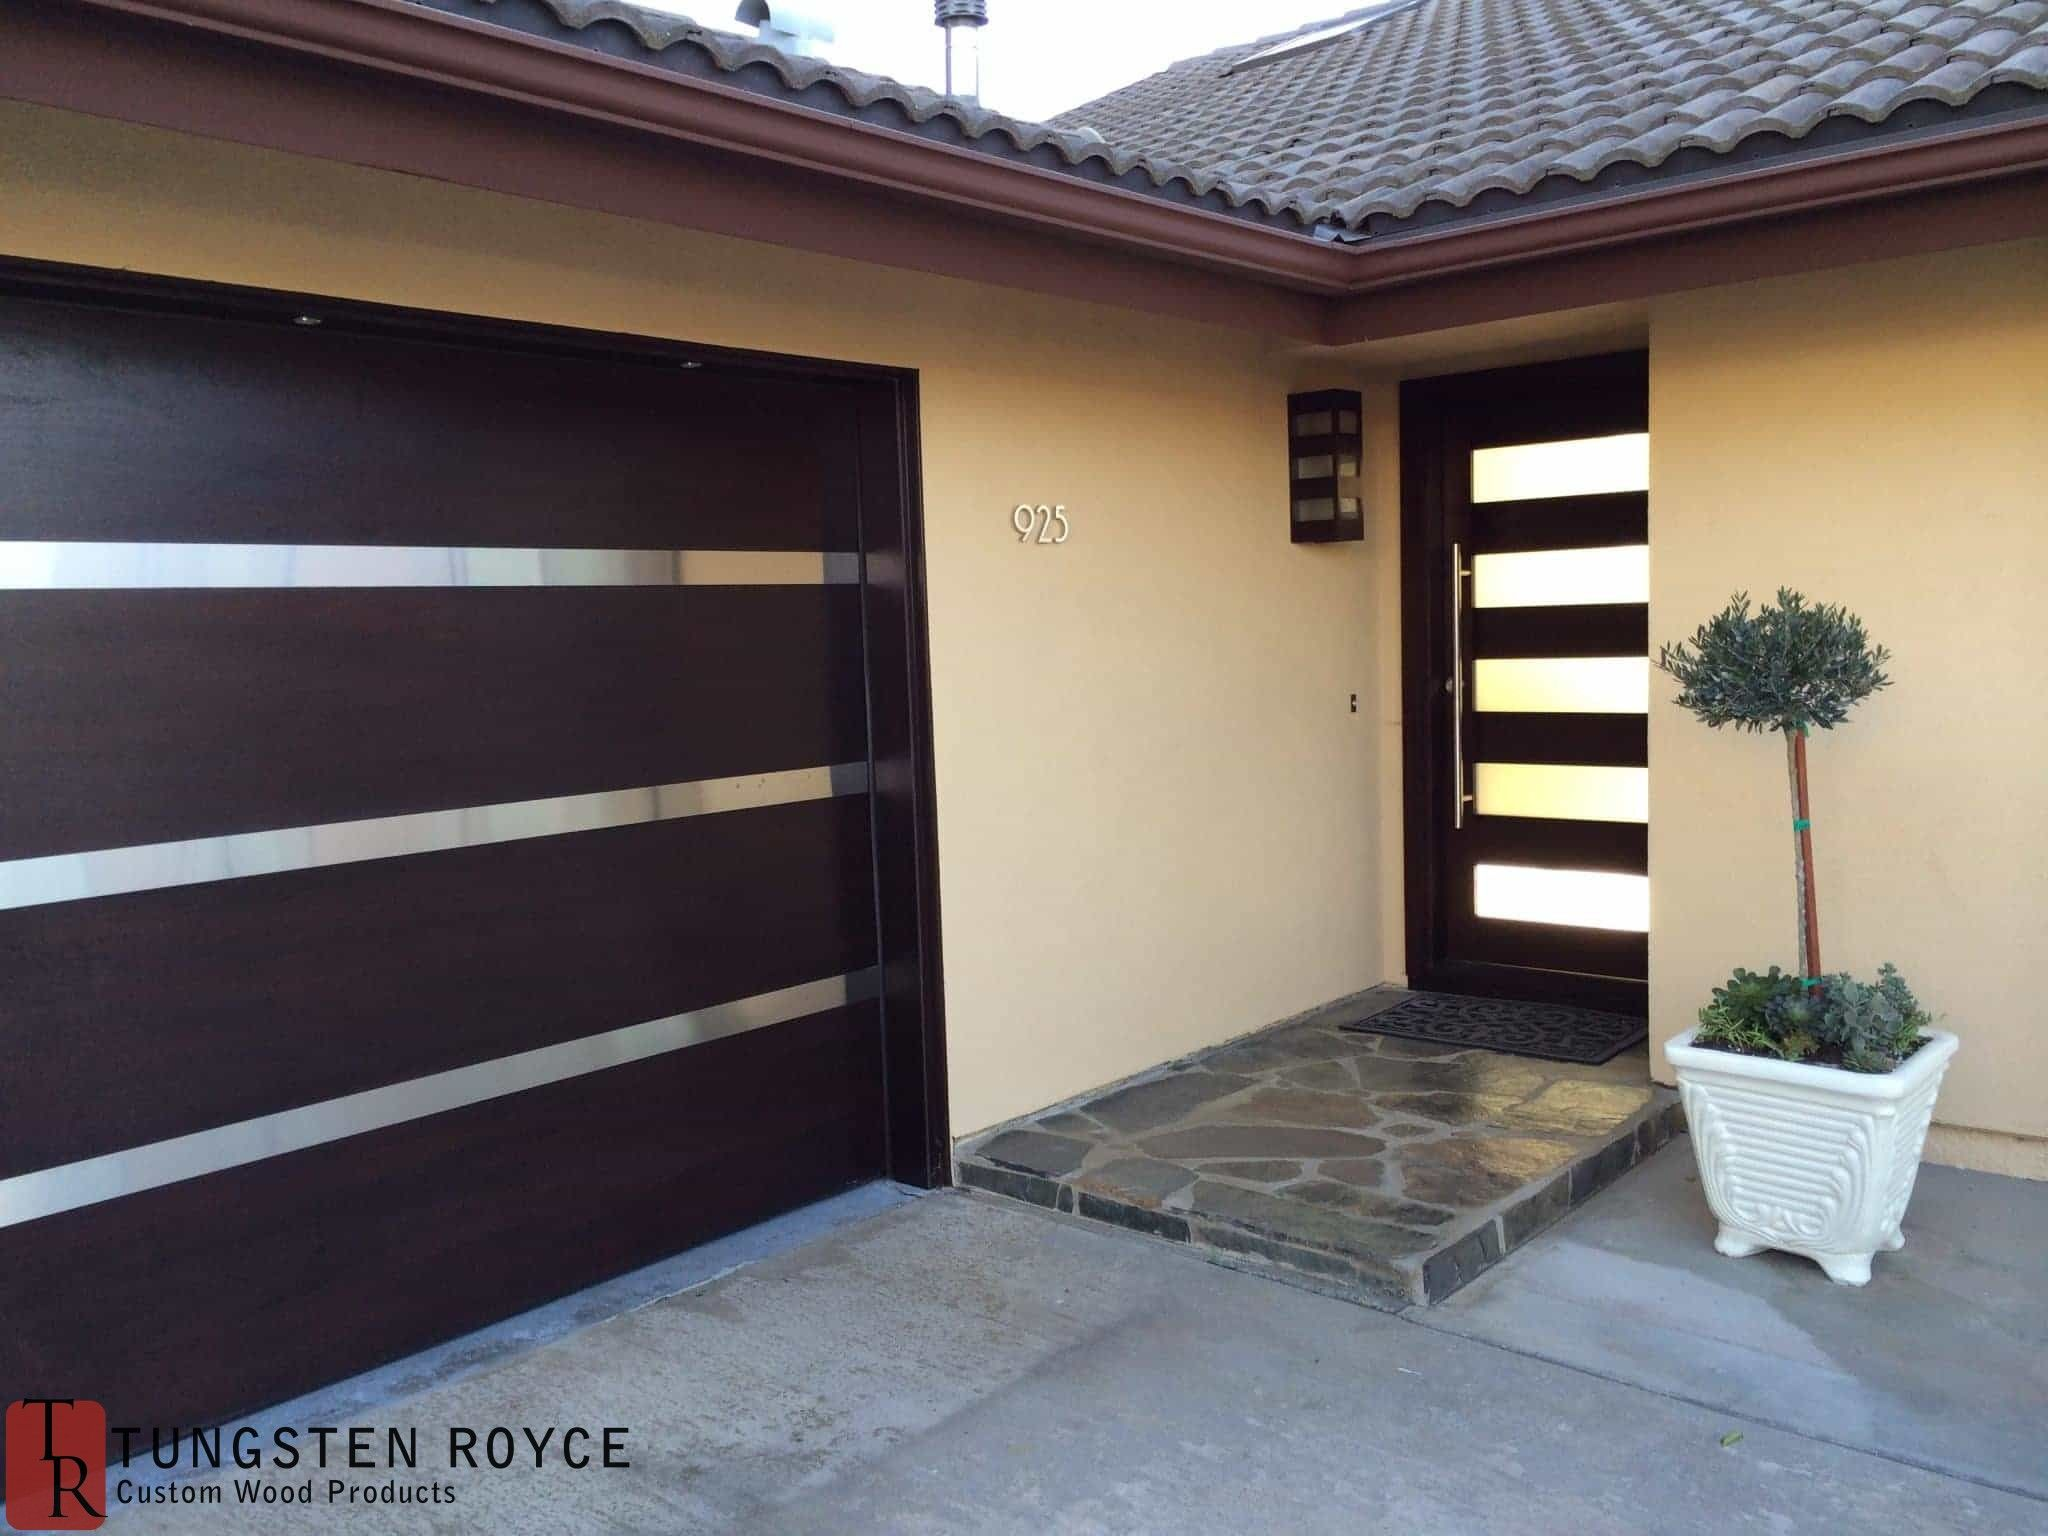 Modern Garage Doors In 2019 Garage Door Modern Garage Doors